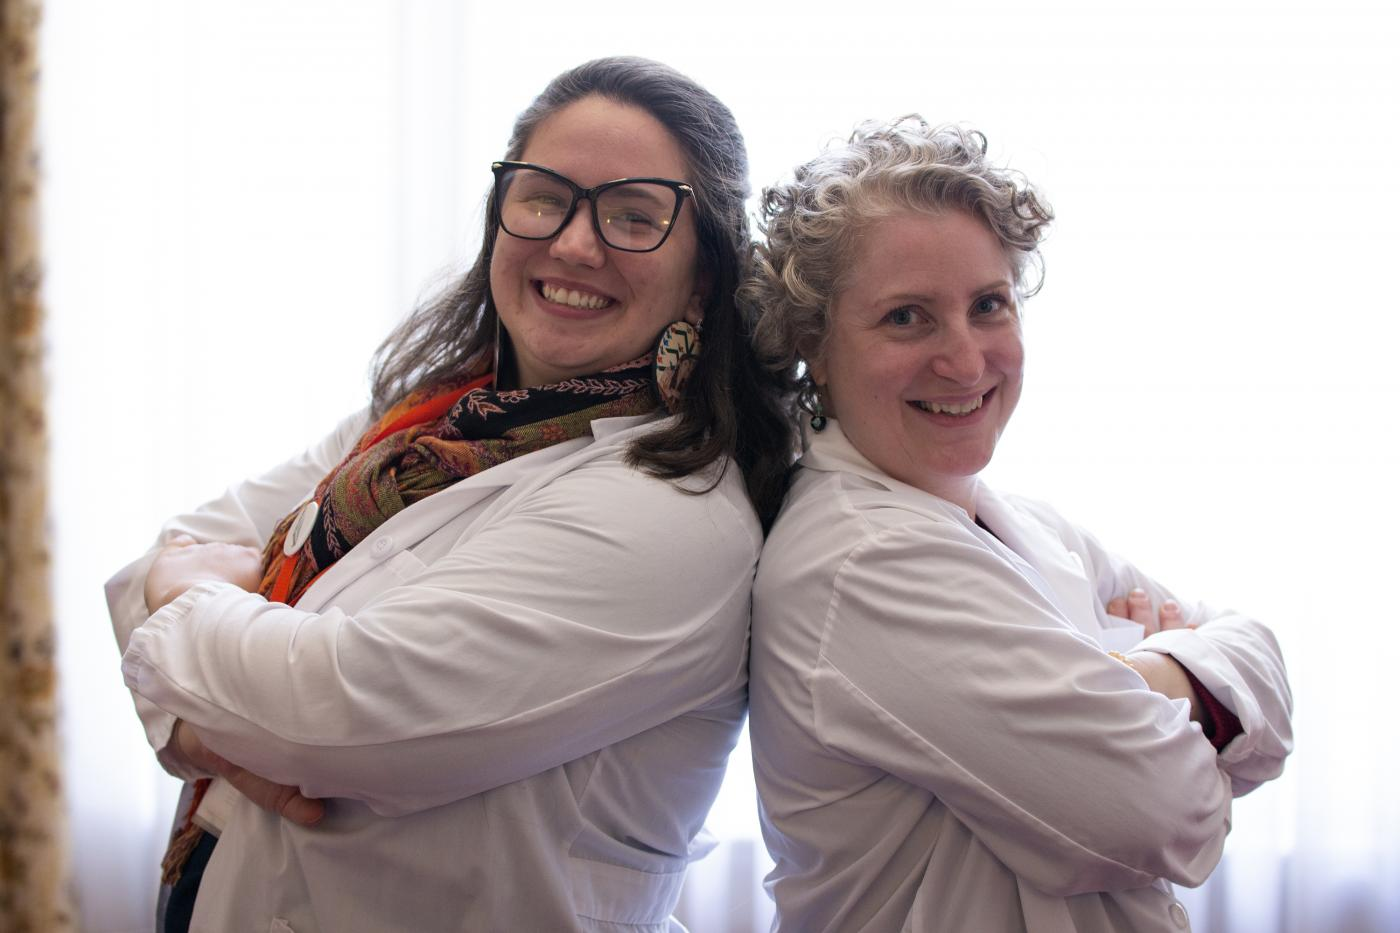 Two smiling, labcoat-wearing women pose back to back with their arms crossed